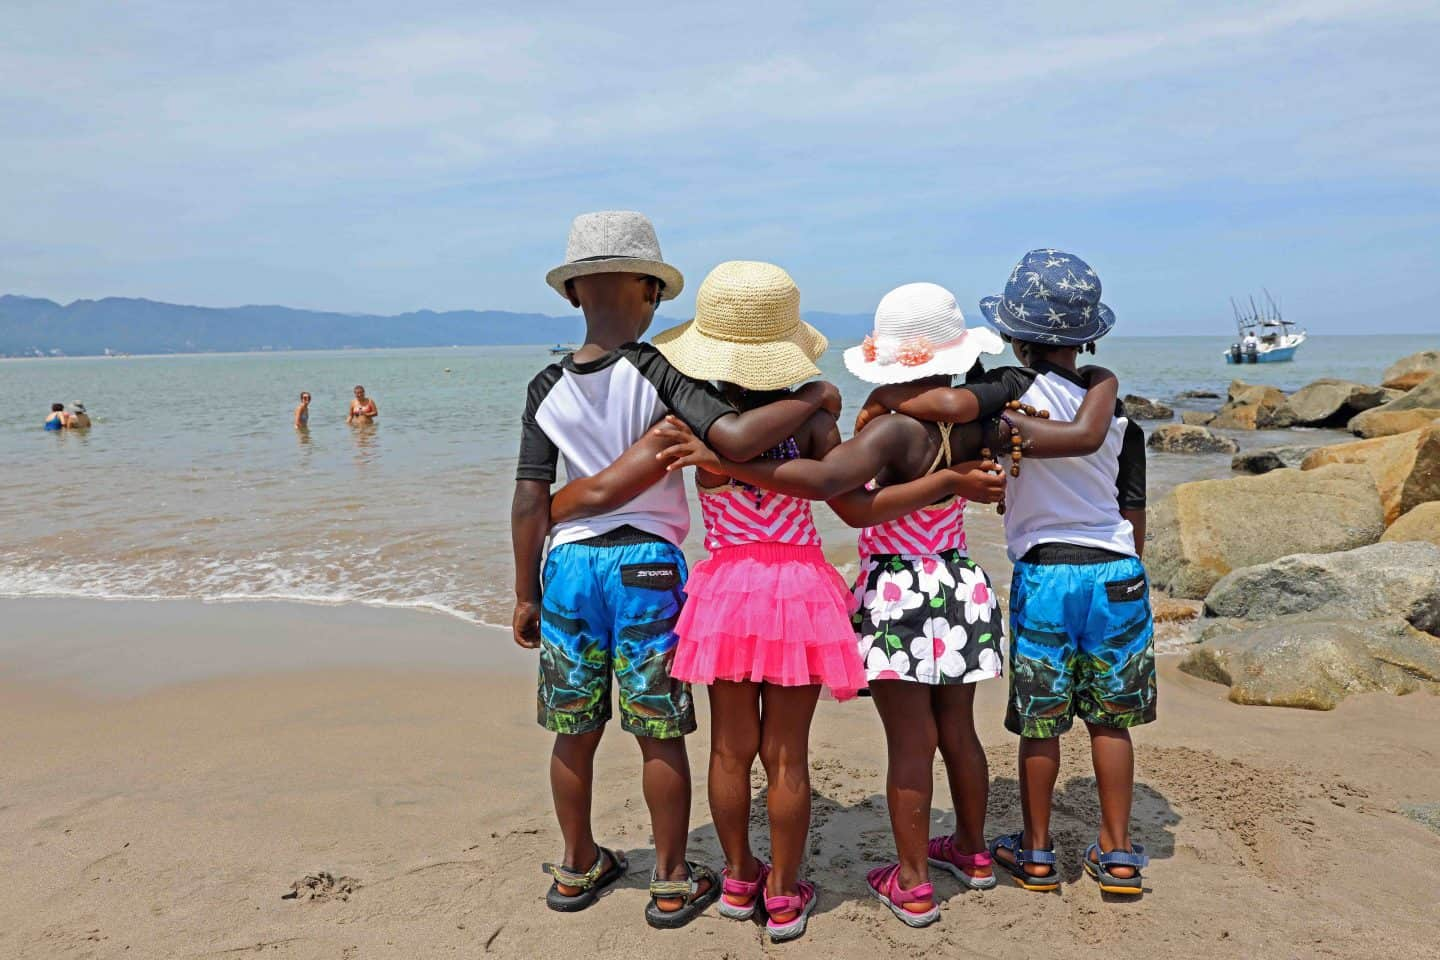 A Solo Parent's Guide To International Travel With Kids 1